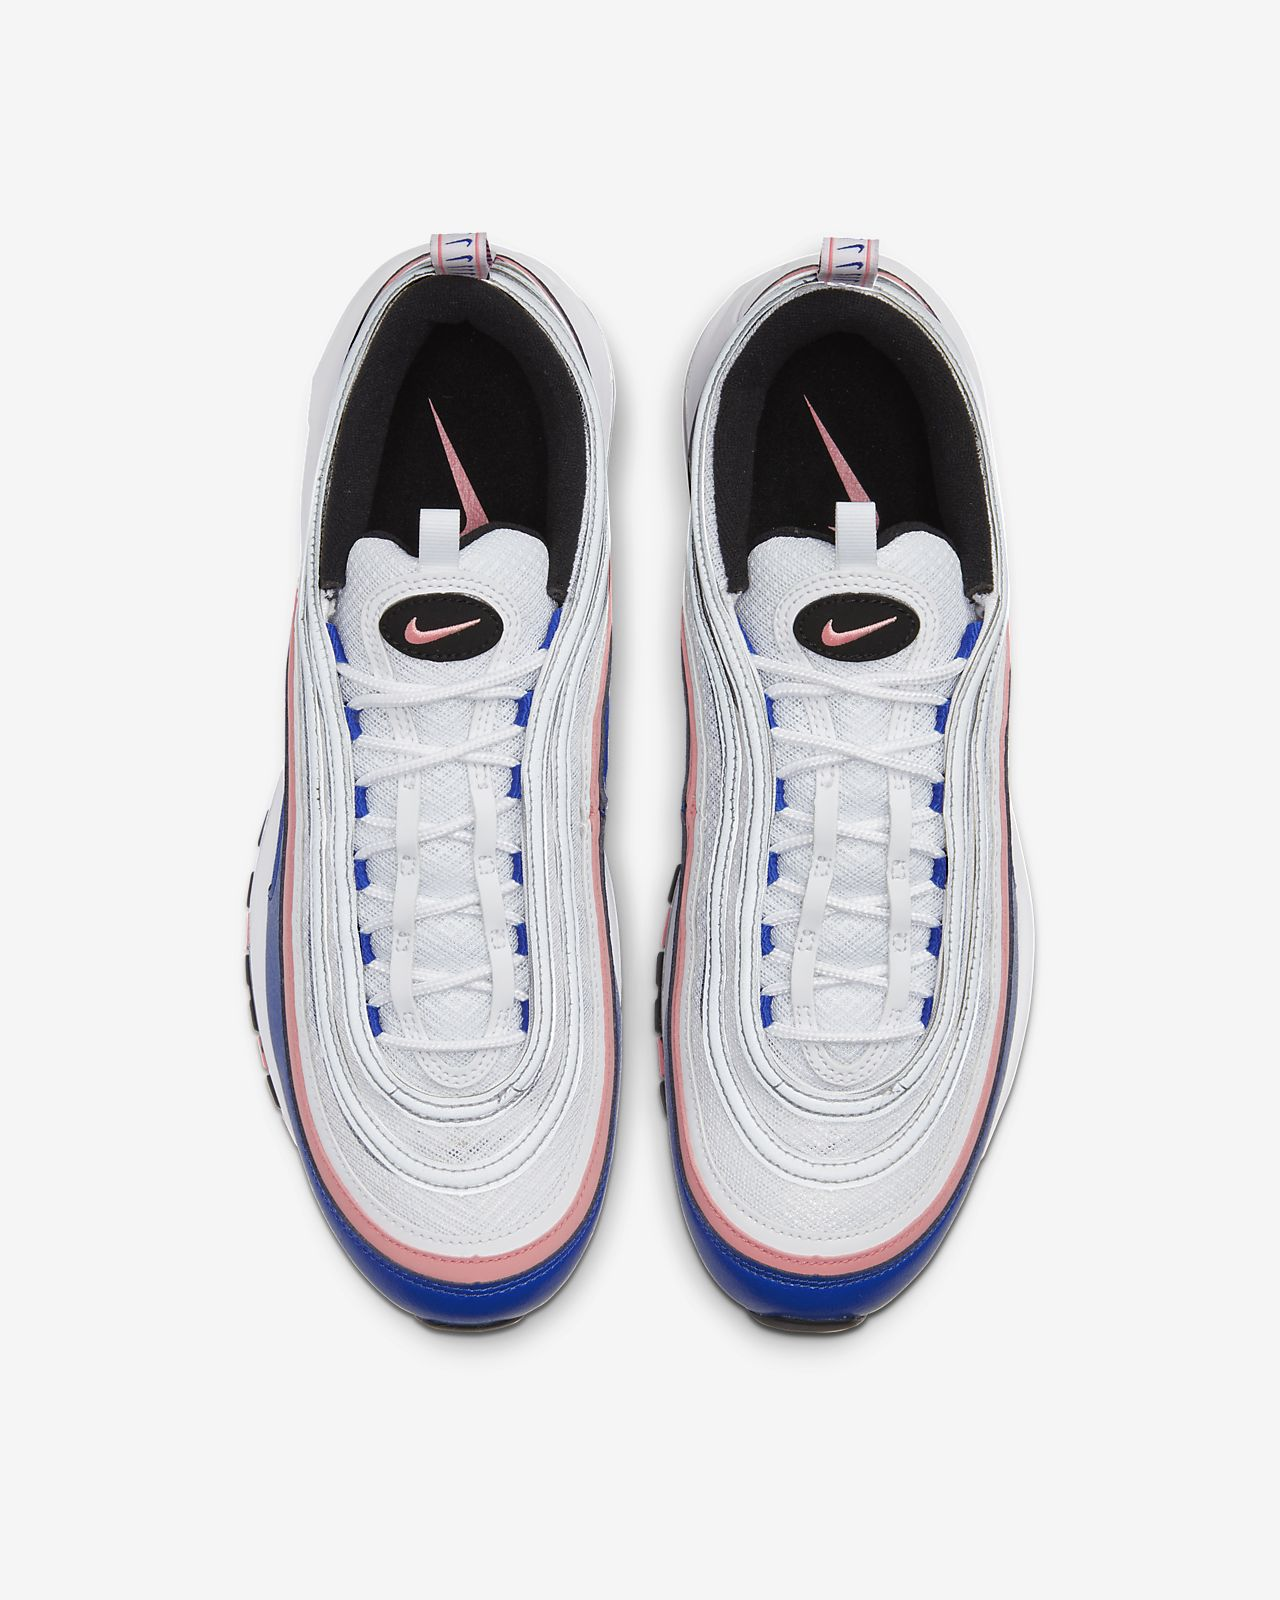 Nike Air Max 97 White Game Royal Pink 921826 107 Release